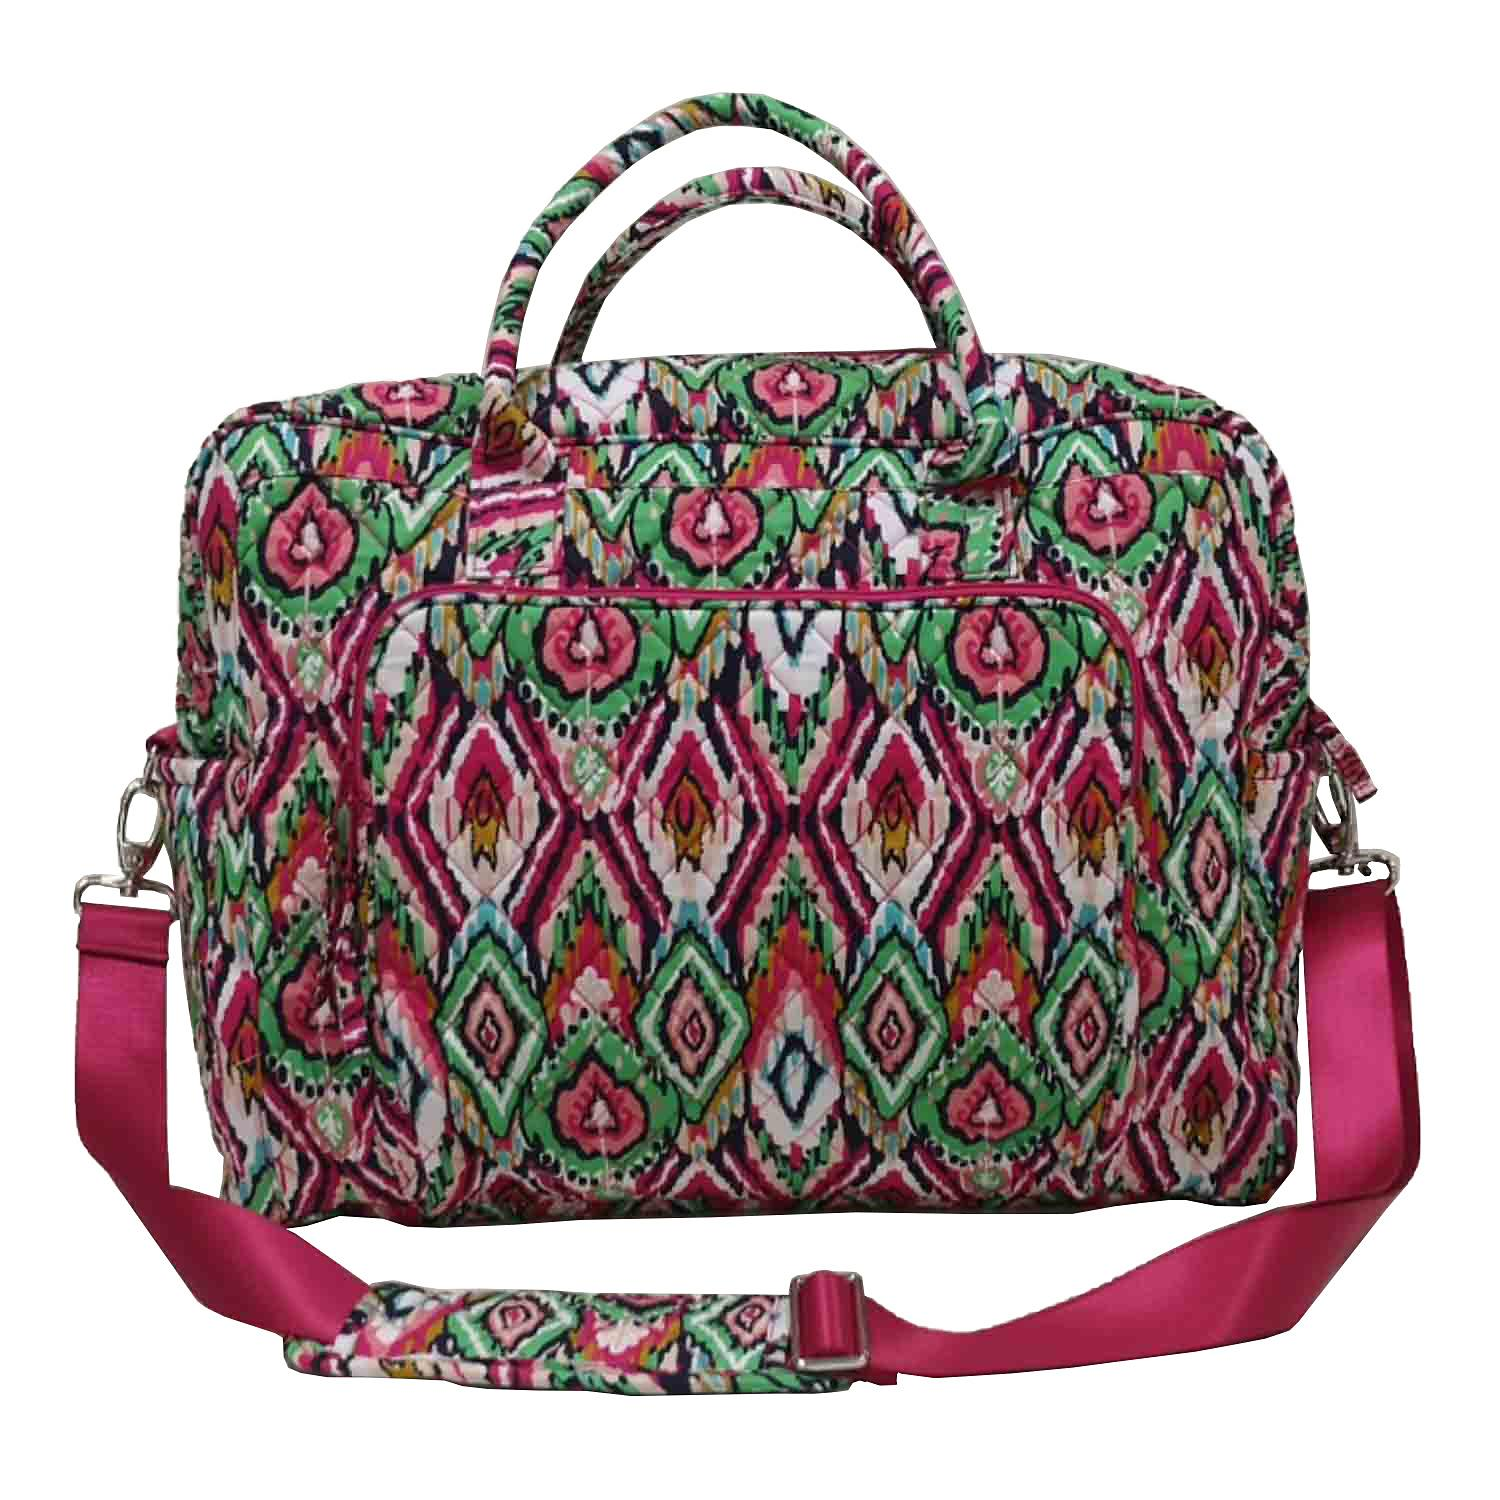 Member's Mark Quilted Travel Tote in Ikat